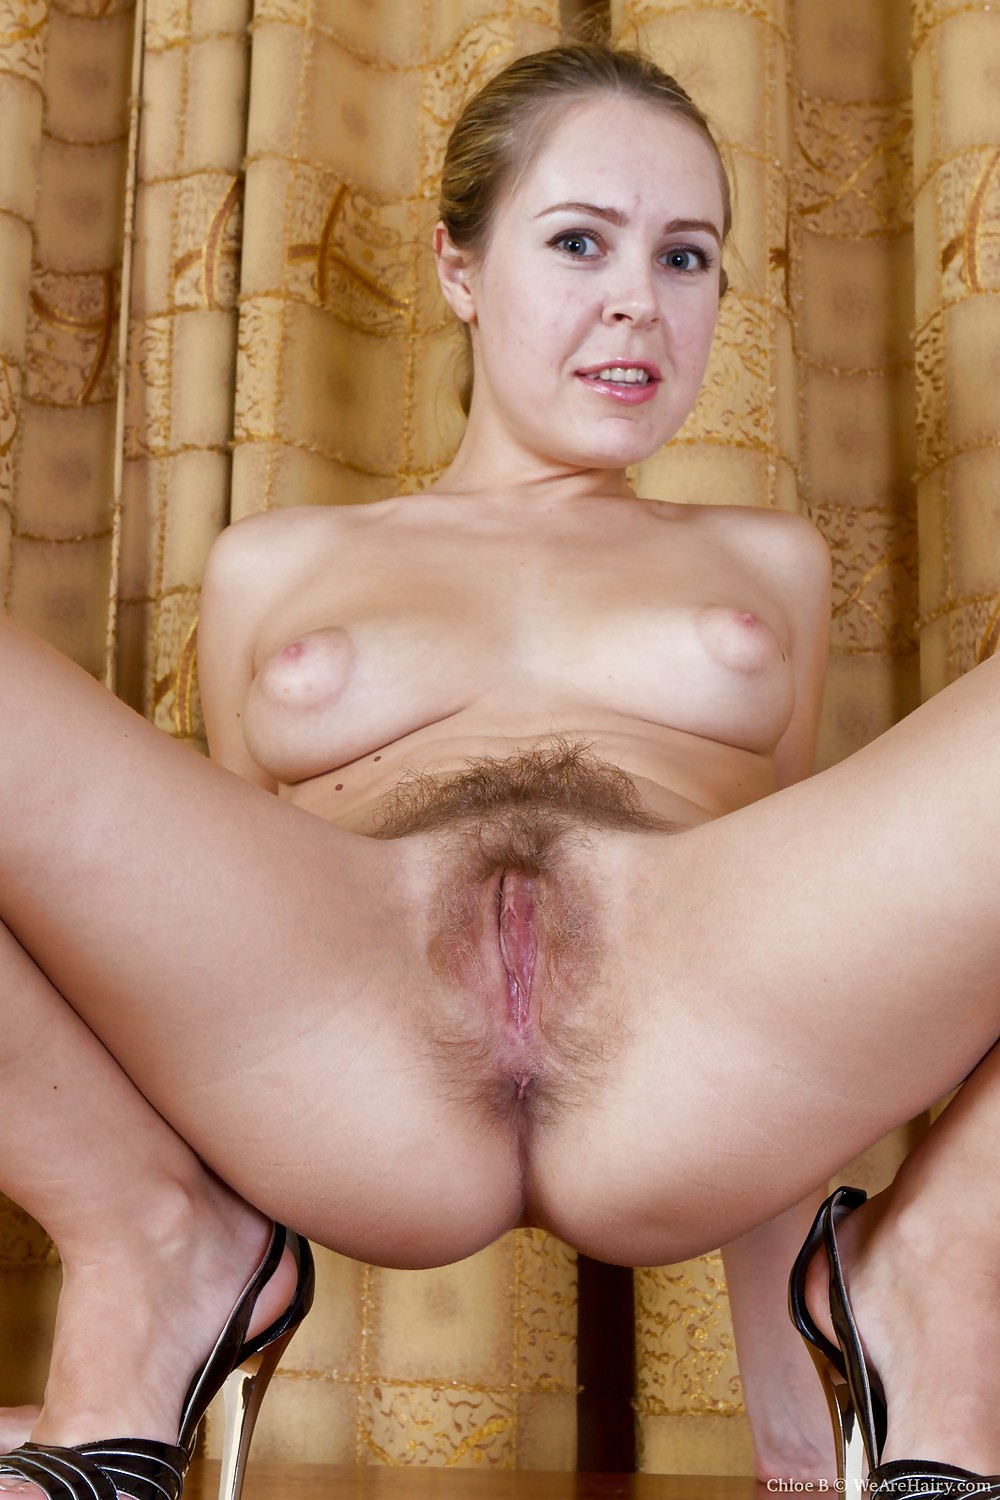 Milf Spreading Hairy Pussy Porn Pics #22830494